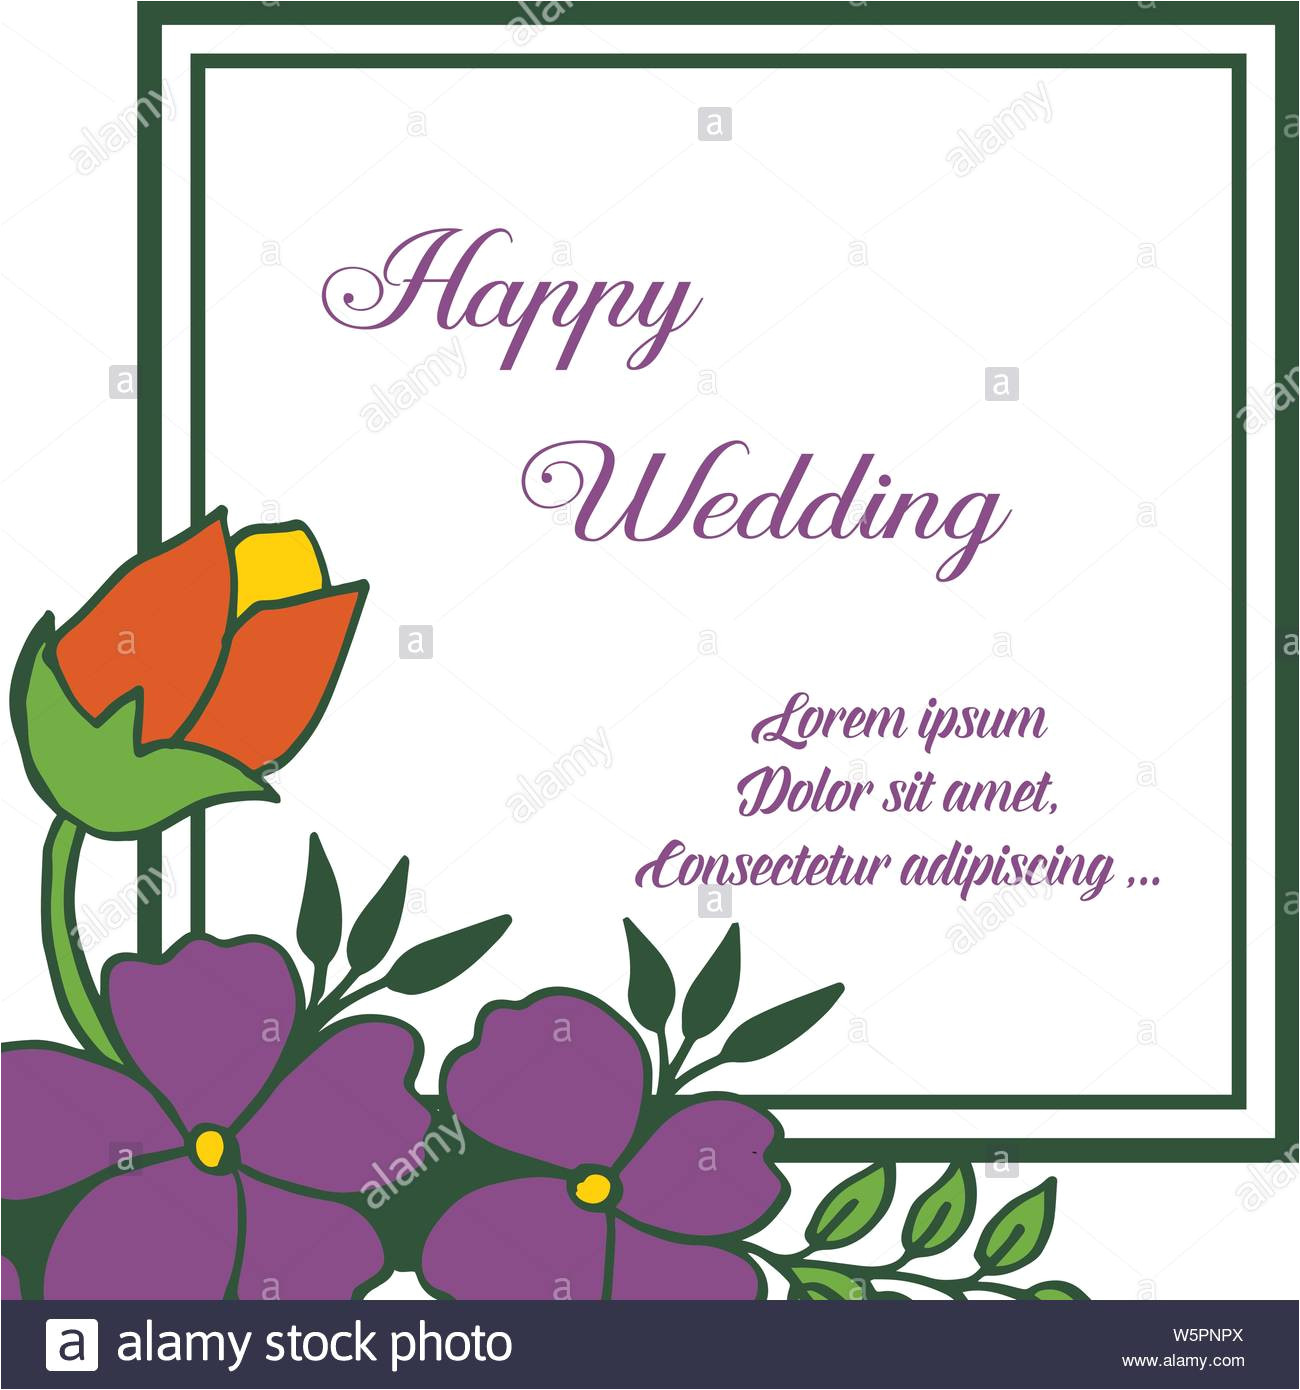 greeting card lettering of happy wedding with purple flowers in a frame with an ornament vector illustration w5pnpx jpg